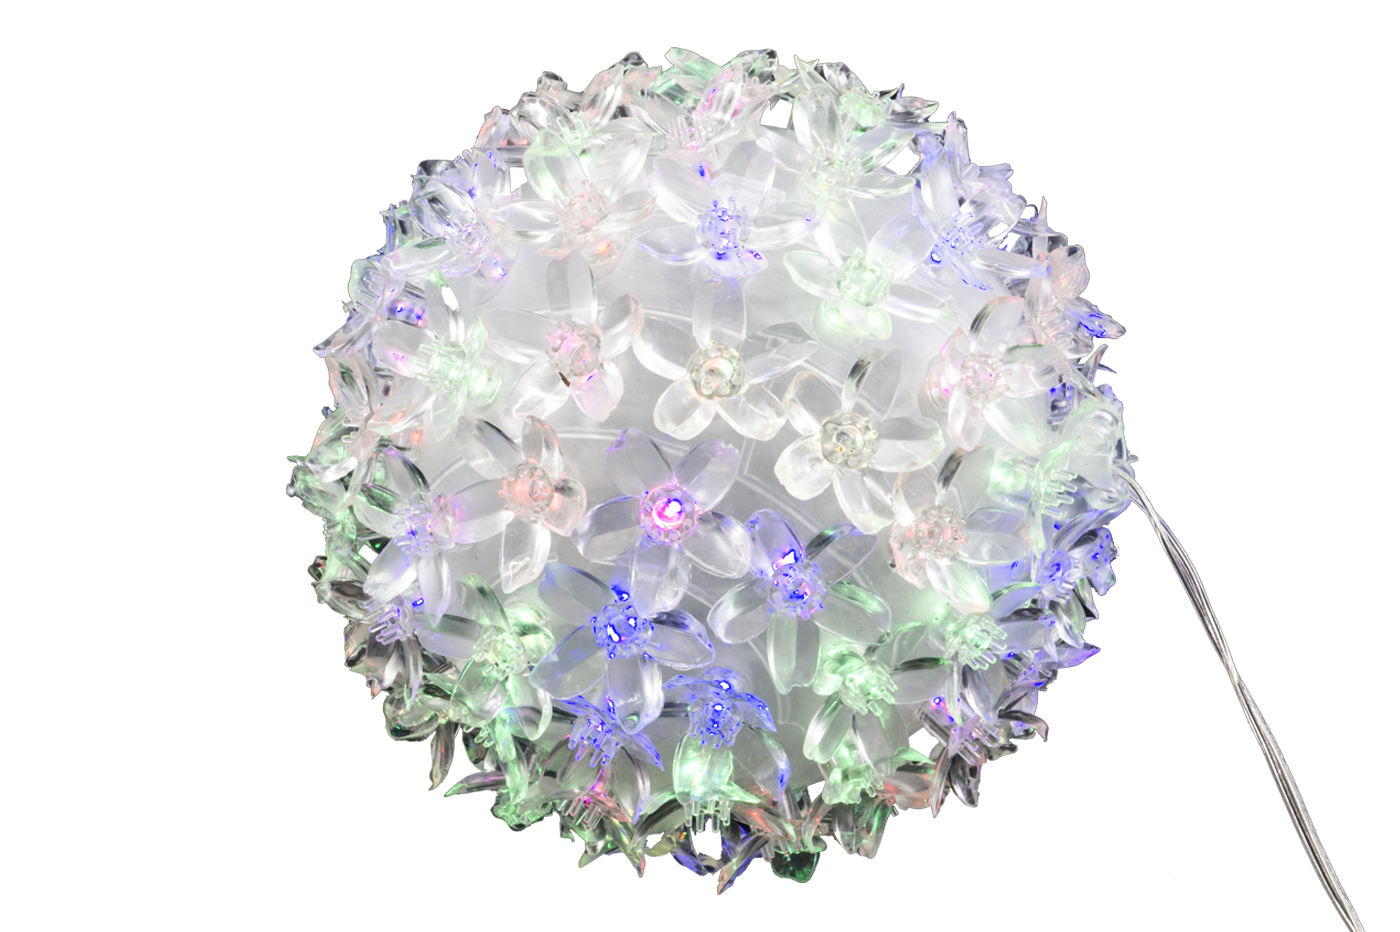 PALLA 100 LED SFERA LUMINOSA NATALE DECORAZIONI FIORI LUCI NATALIZIE MULTICOLOR